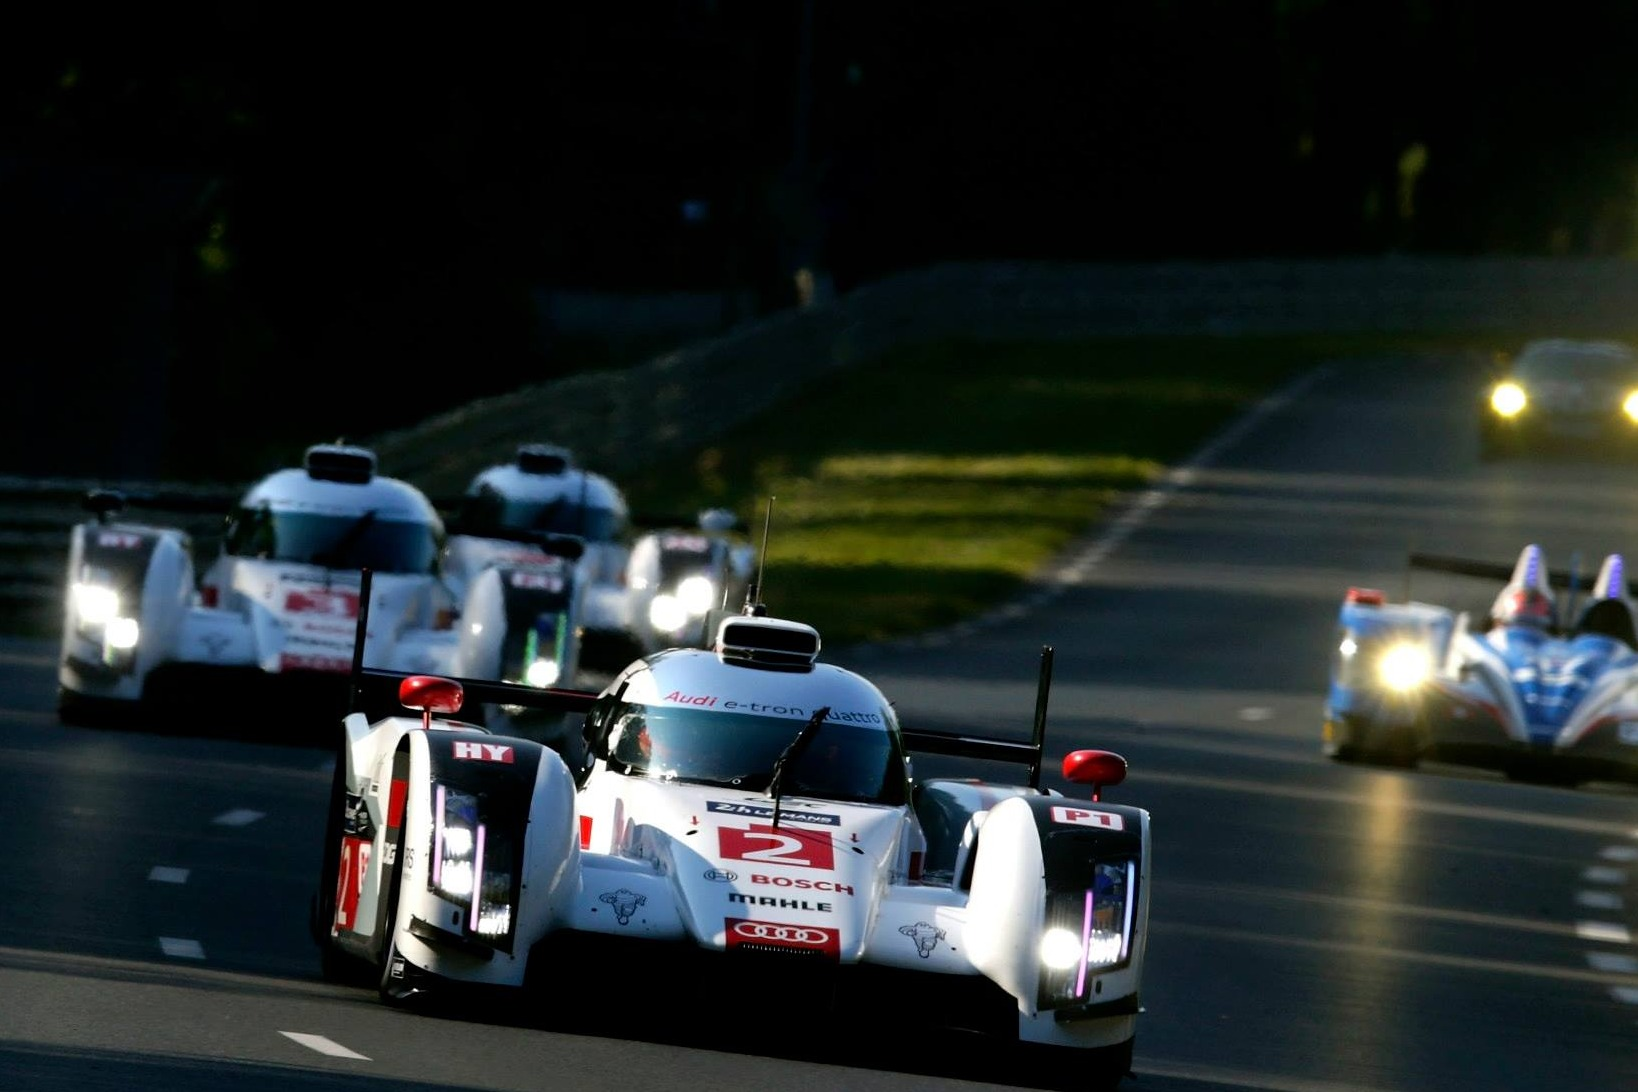 Racecars on the track at Le Mans 24 Hours